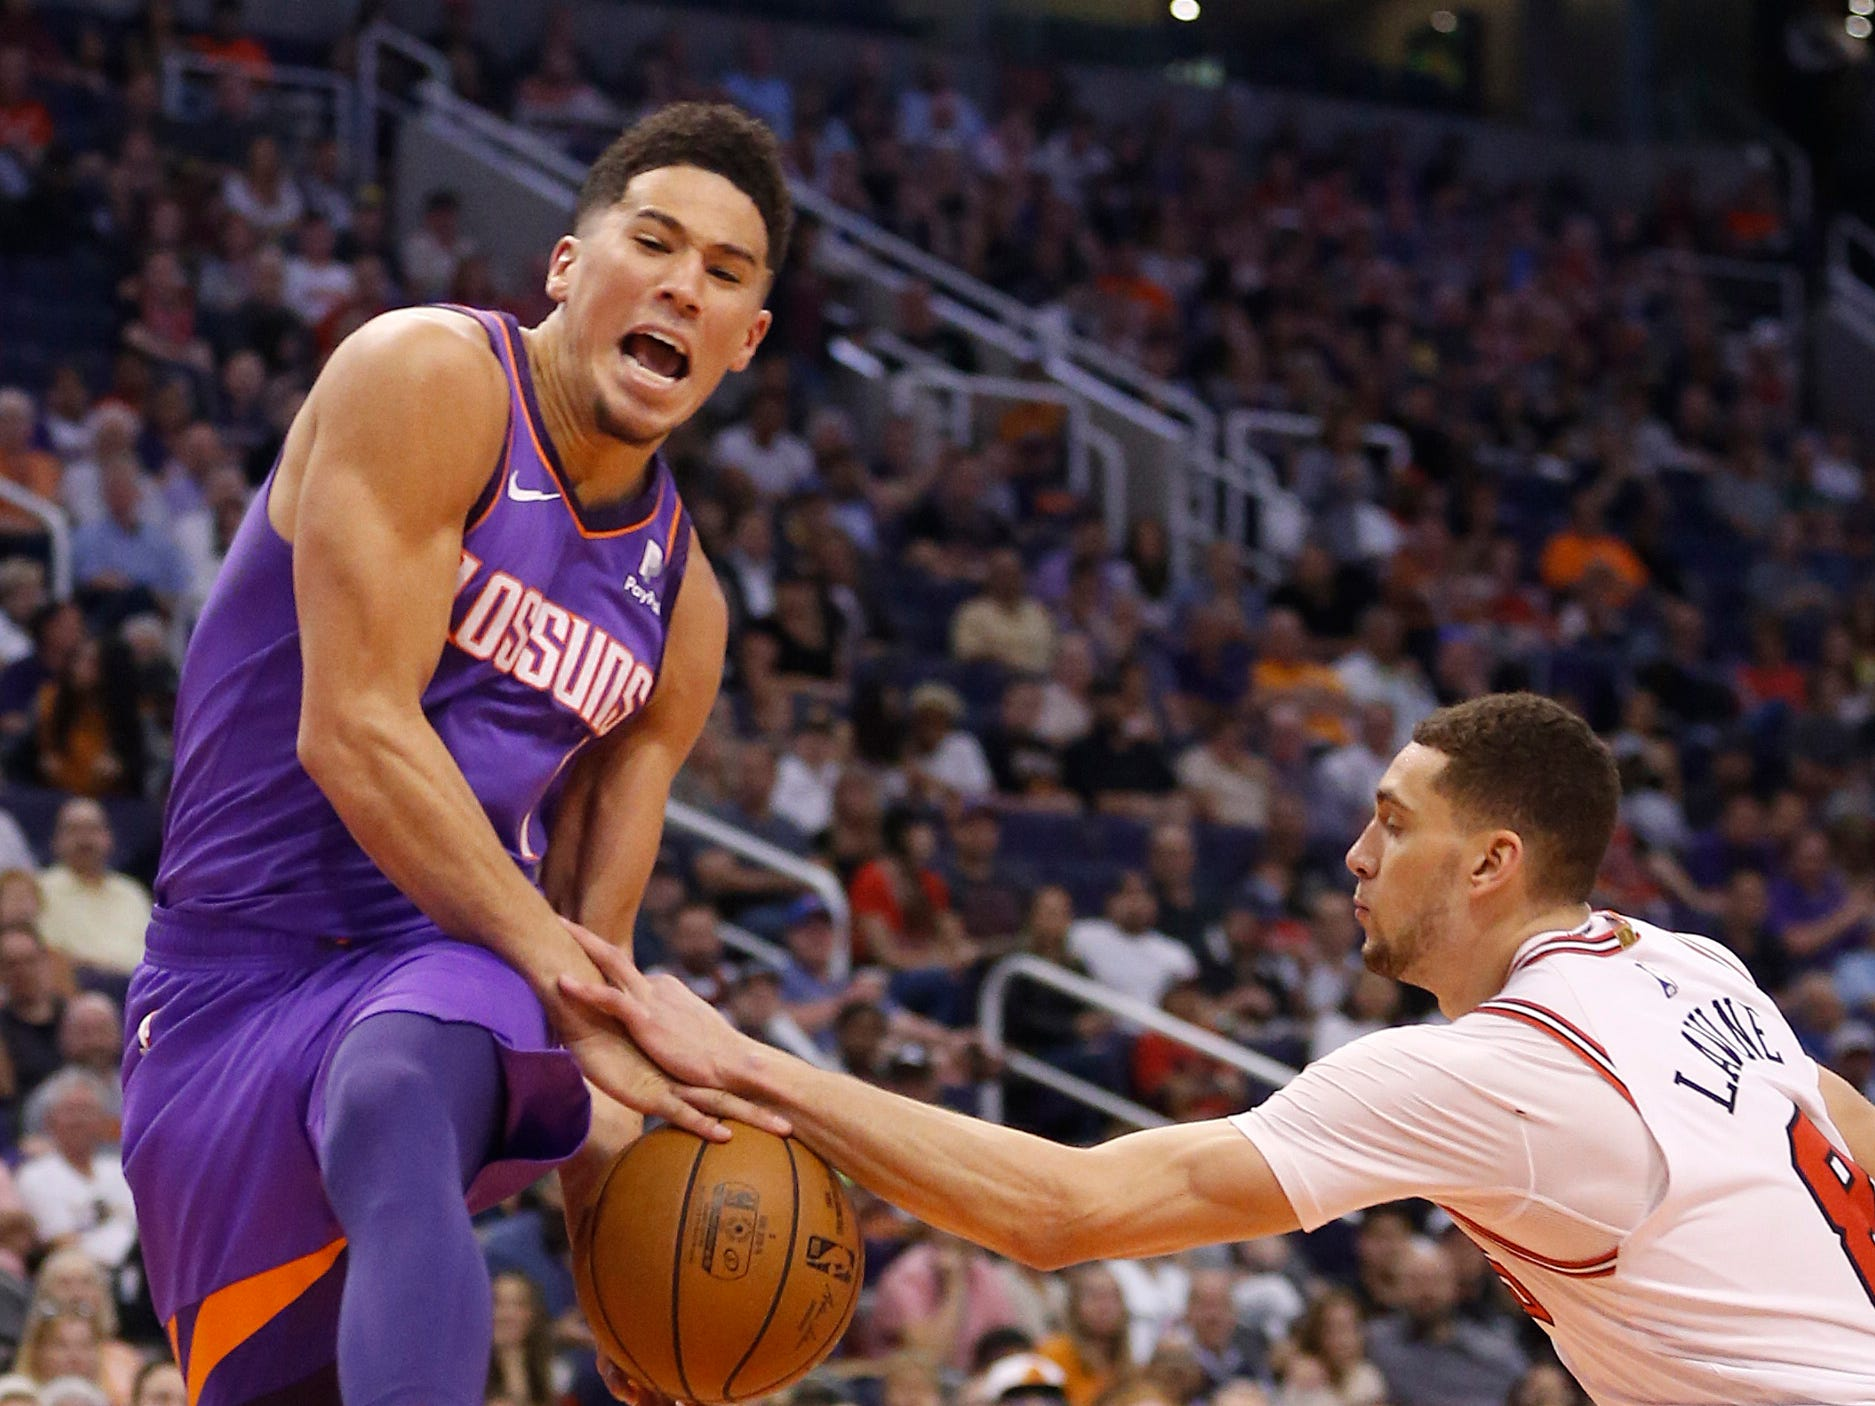 Bulls' Zach LaVine (8) strips the ball from Suns' Devin Booker (1) during the first half at Talking Stick Resort Arena in Phoenix, Ariz. on March 18, 2019.